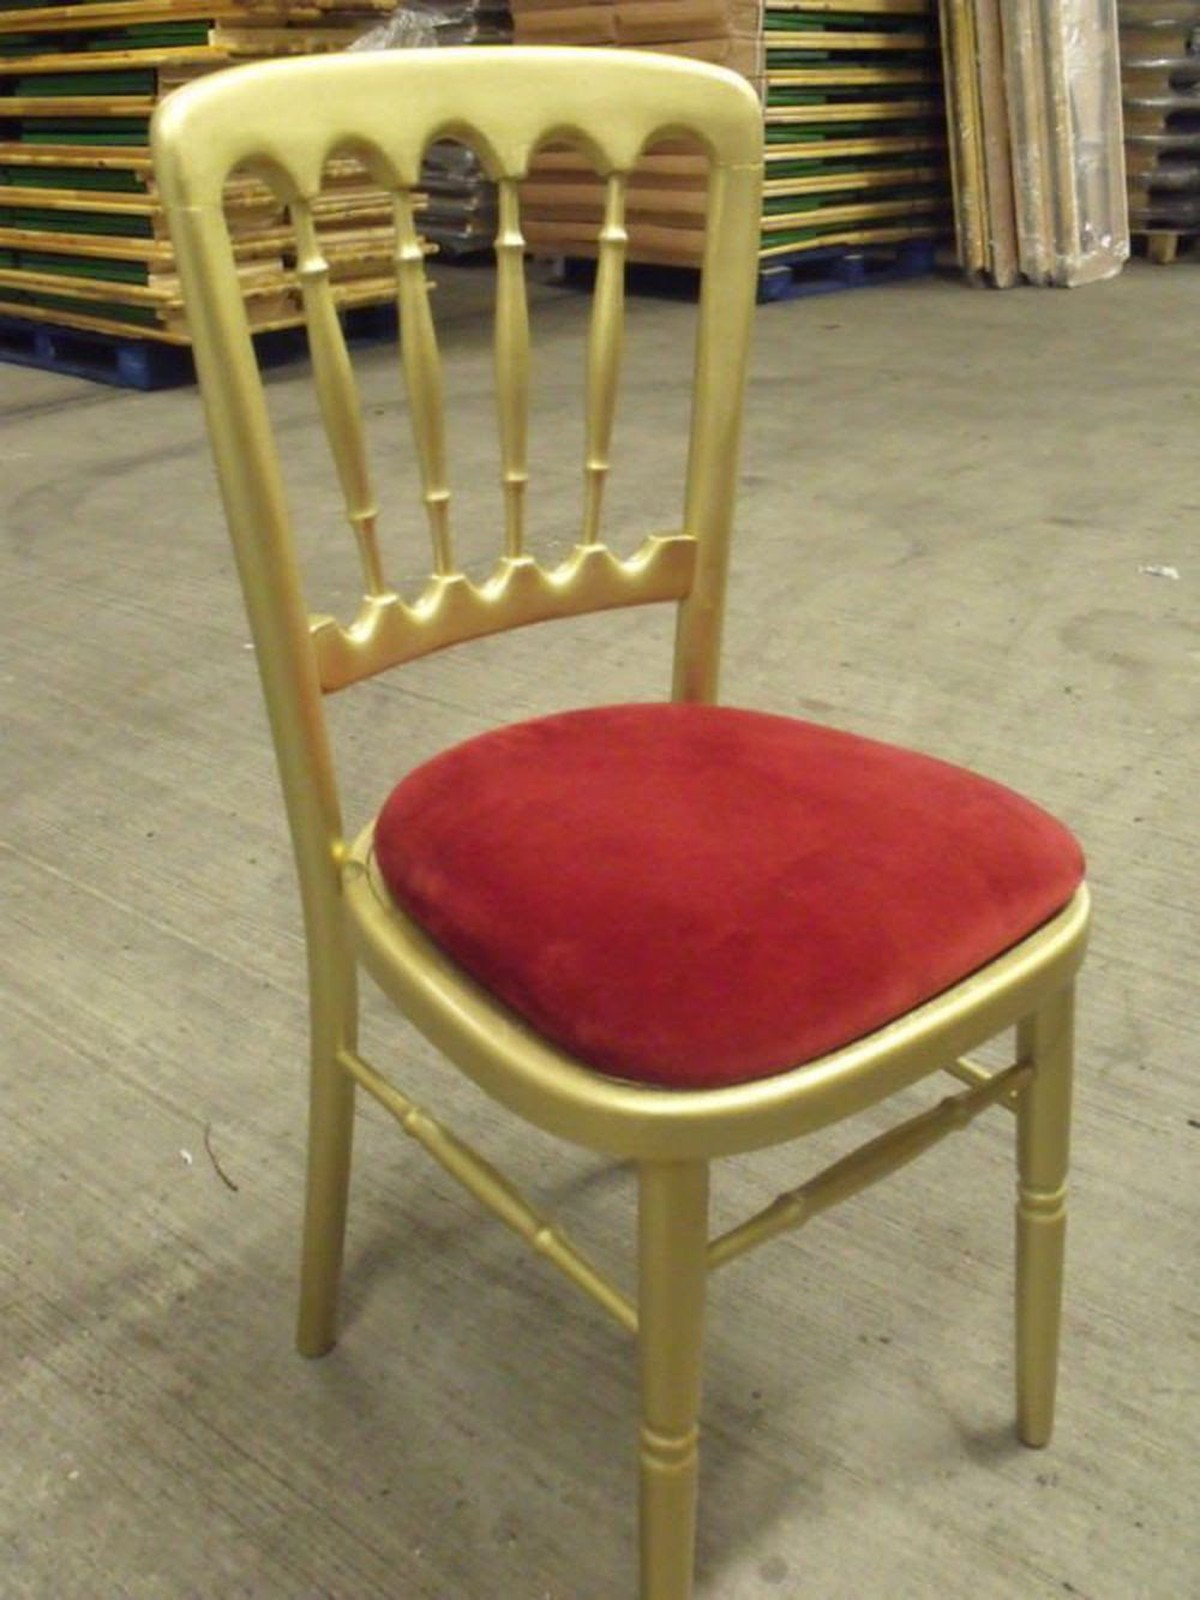 Secondhand Chairs And Tables Cheltenham Banqueting Chairs 90x Gold Banquet Chairs With Red Seat Pads Liverpool Merseyside